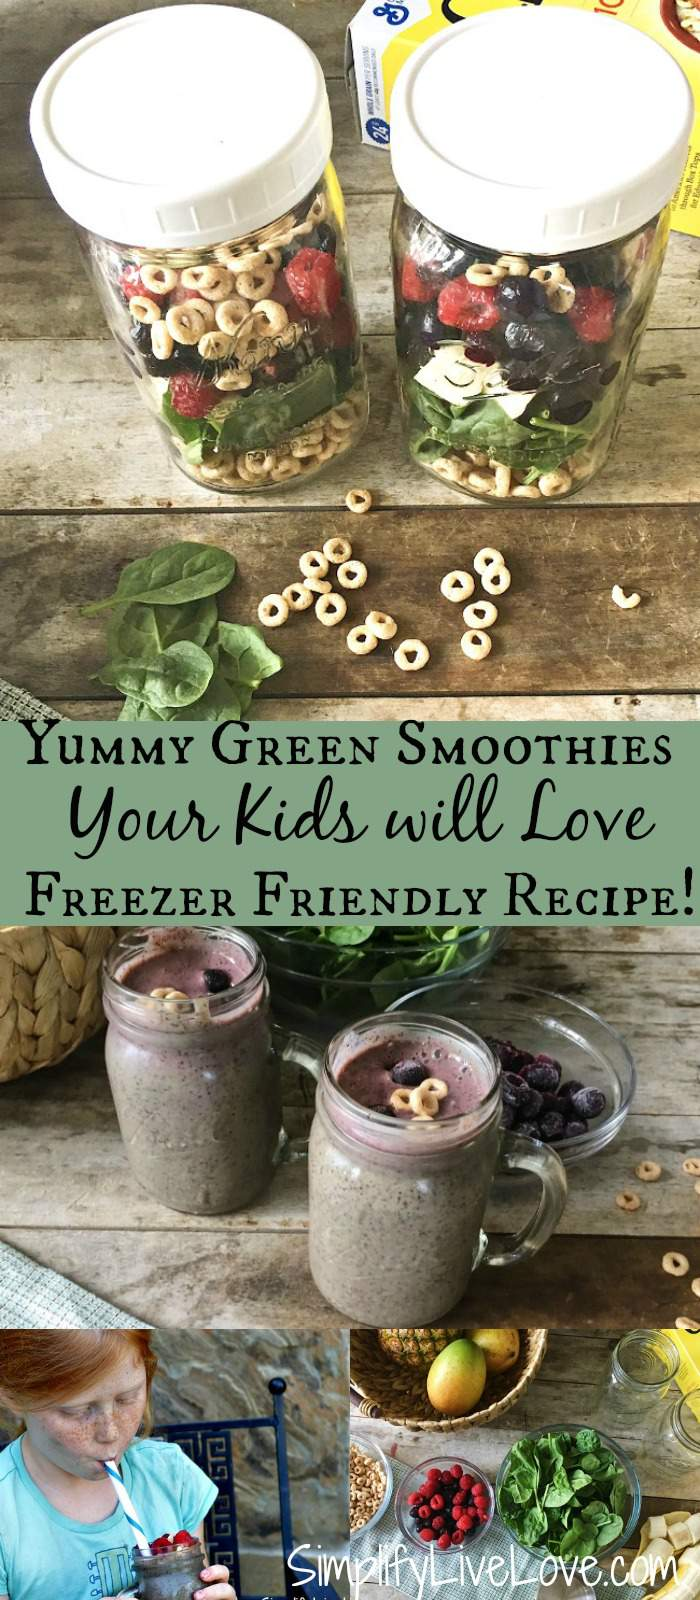 Yummy green smoothies your kids will love. Plus tips for how to freeze smoothies in glass jars.